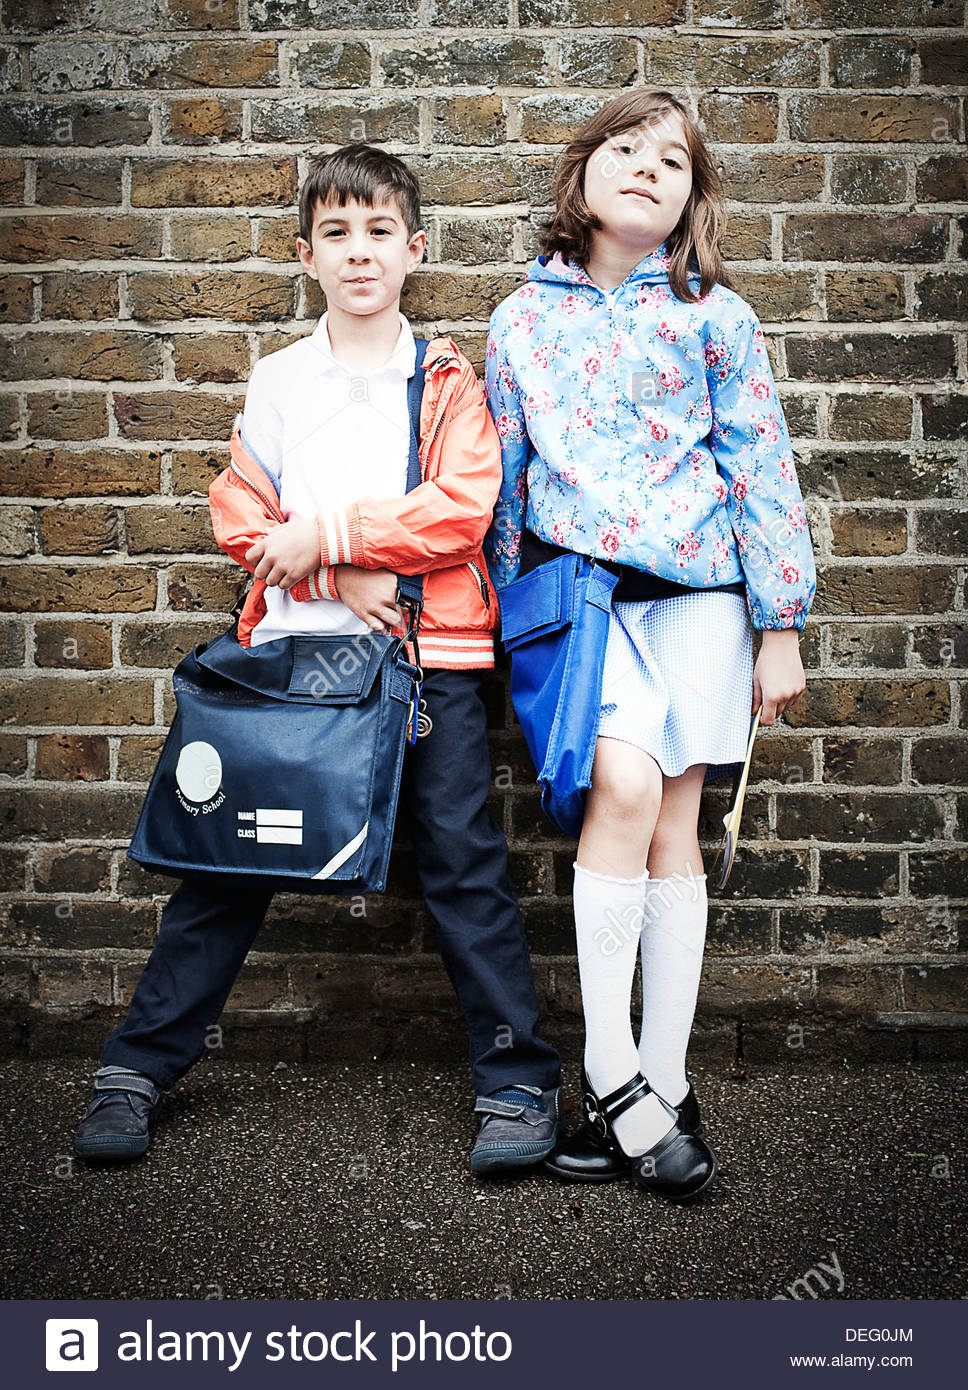 Boy and girl standing in front of brick wall with school bags - Stock Image